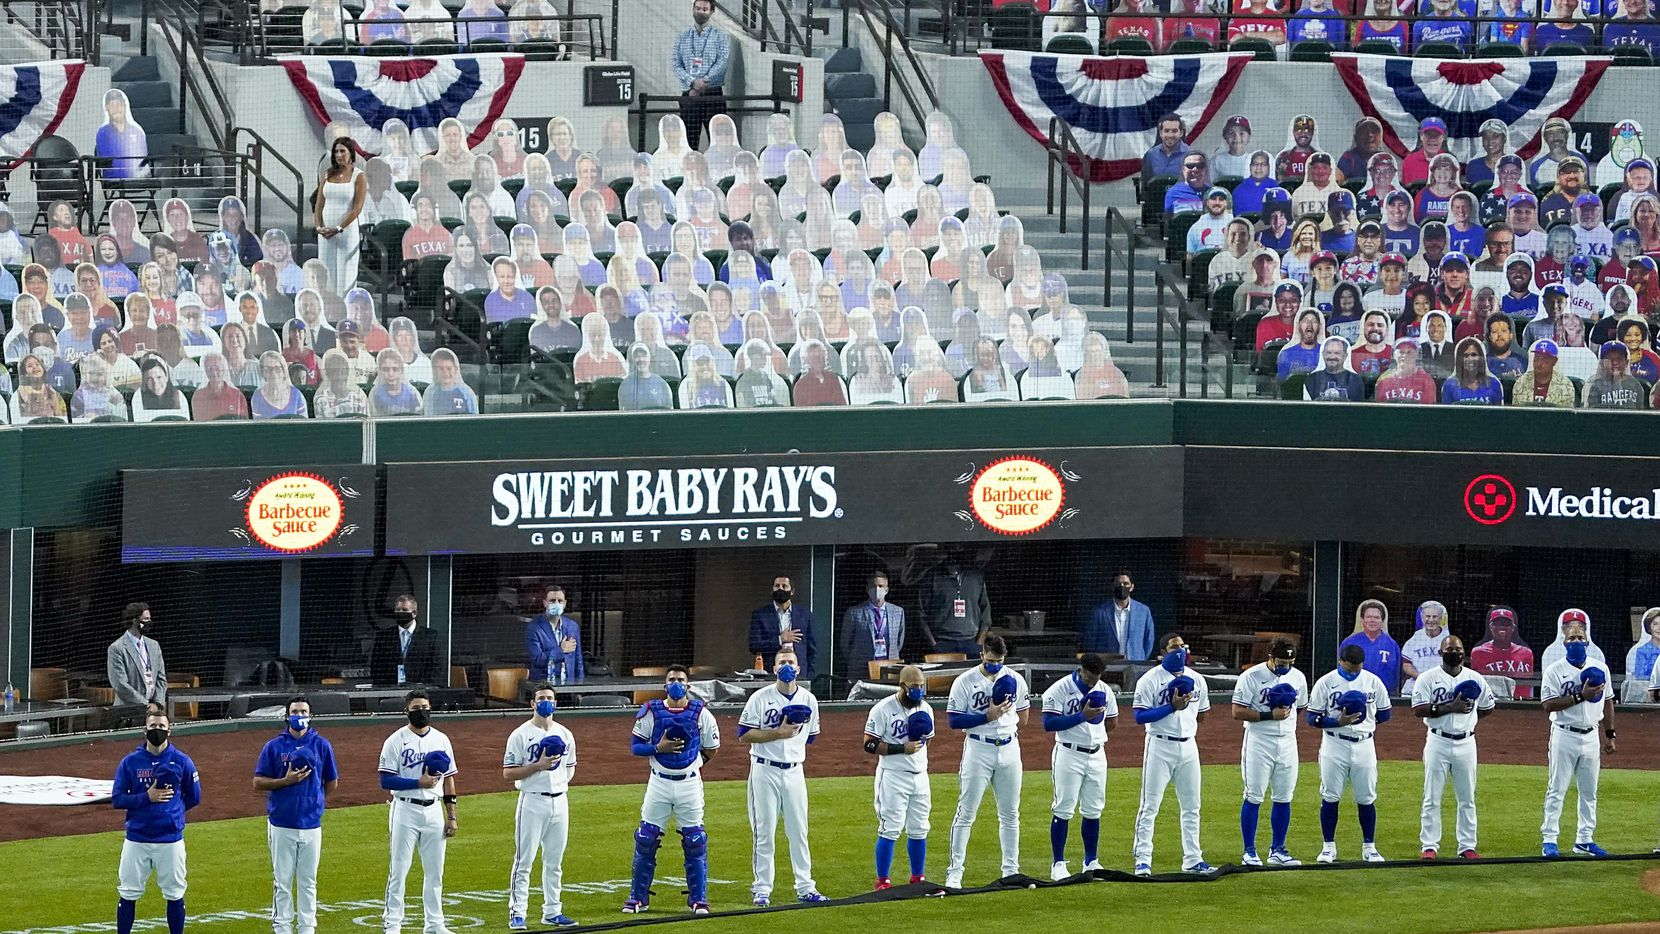 In front of a sea of cutout photos, , Texas Rangers players stand during the singing of the national before playing the Colorado Rockies on opening day at Globe Life Field on Friday, July 24.